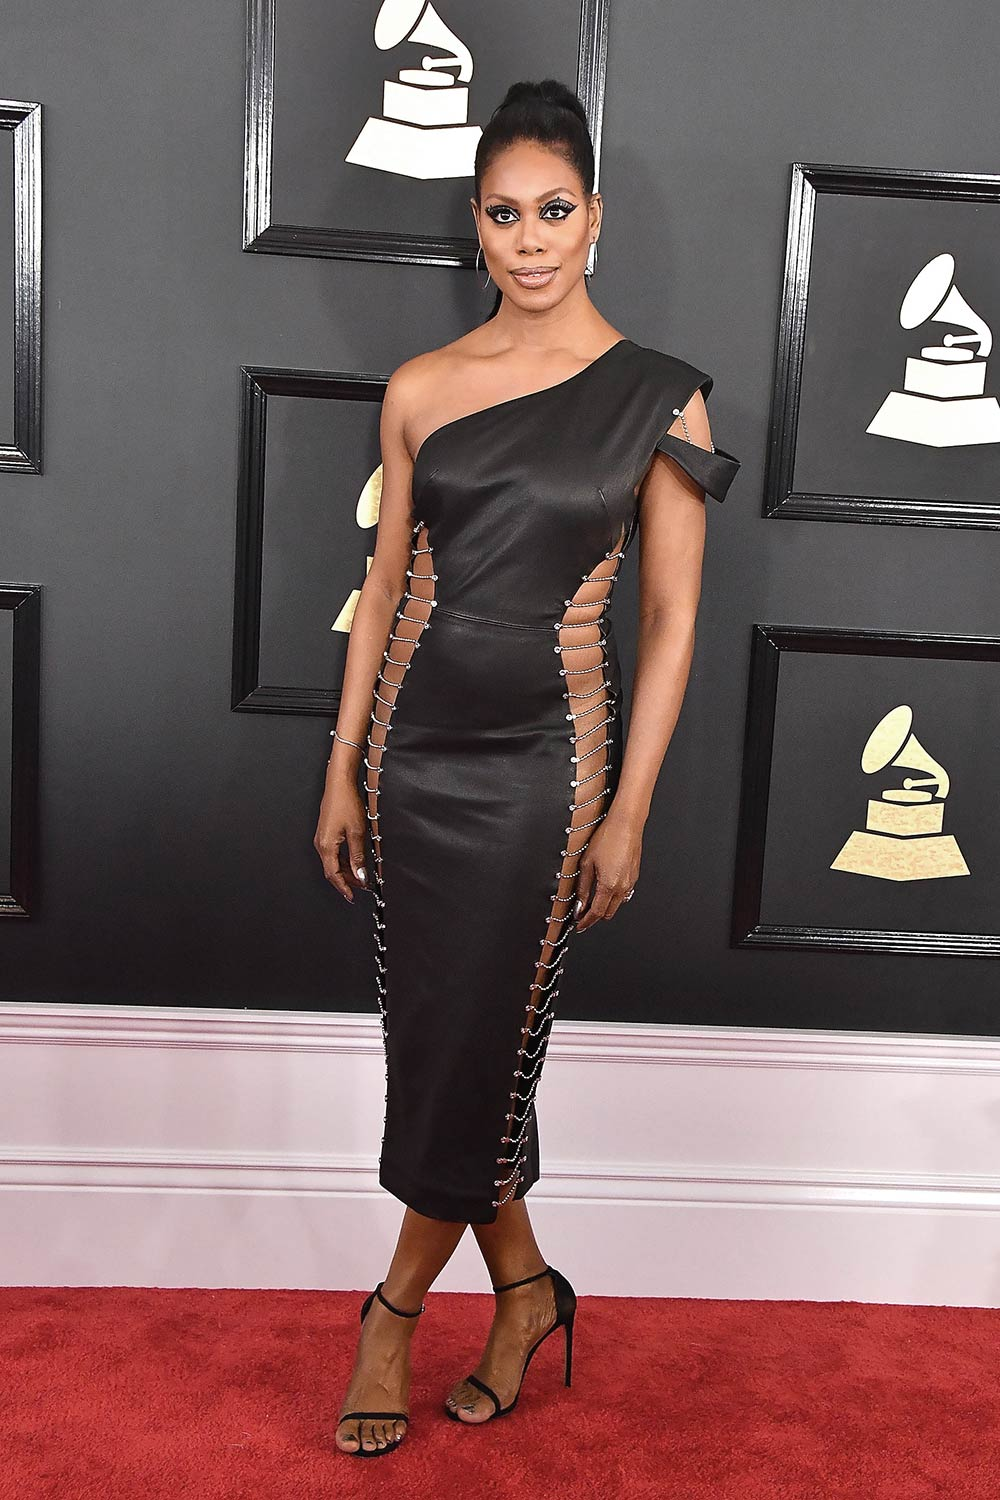 Laverne Cox Attends The 59th Grammy Awards Leather